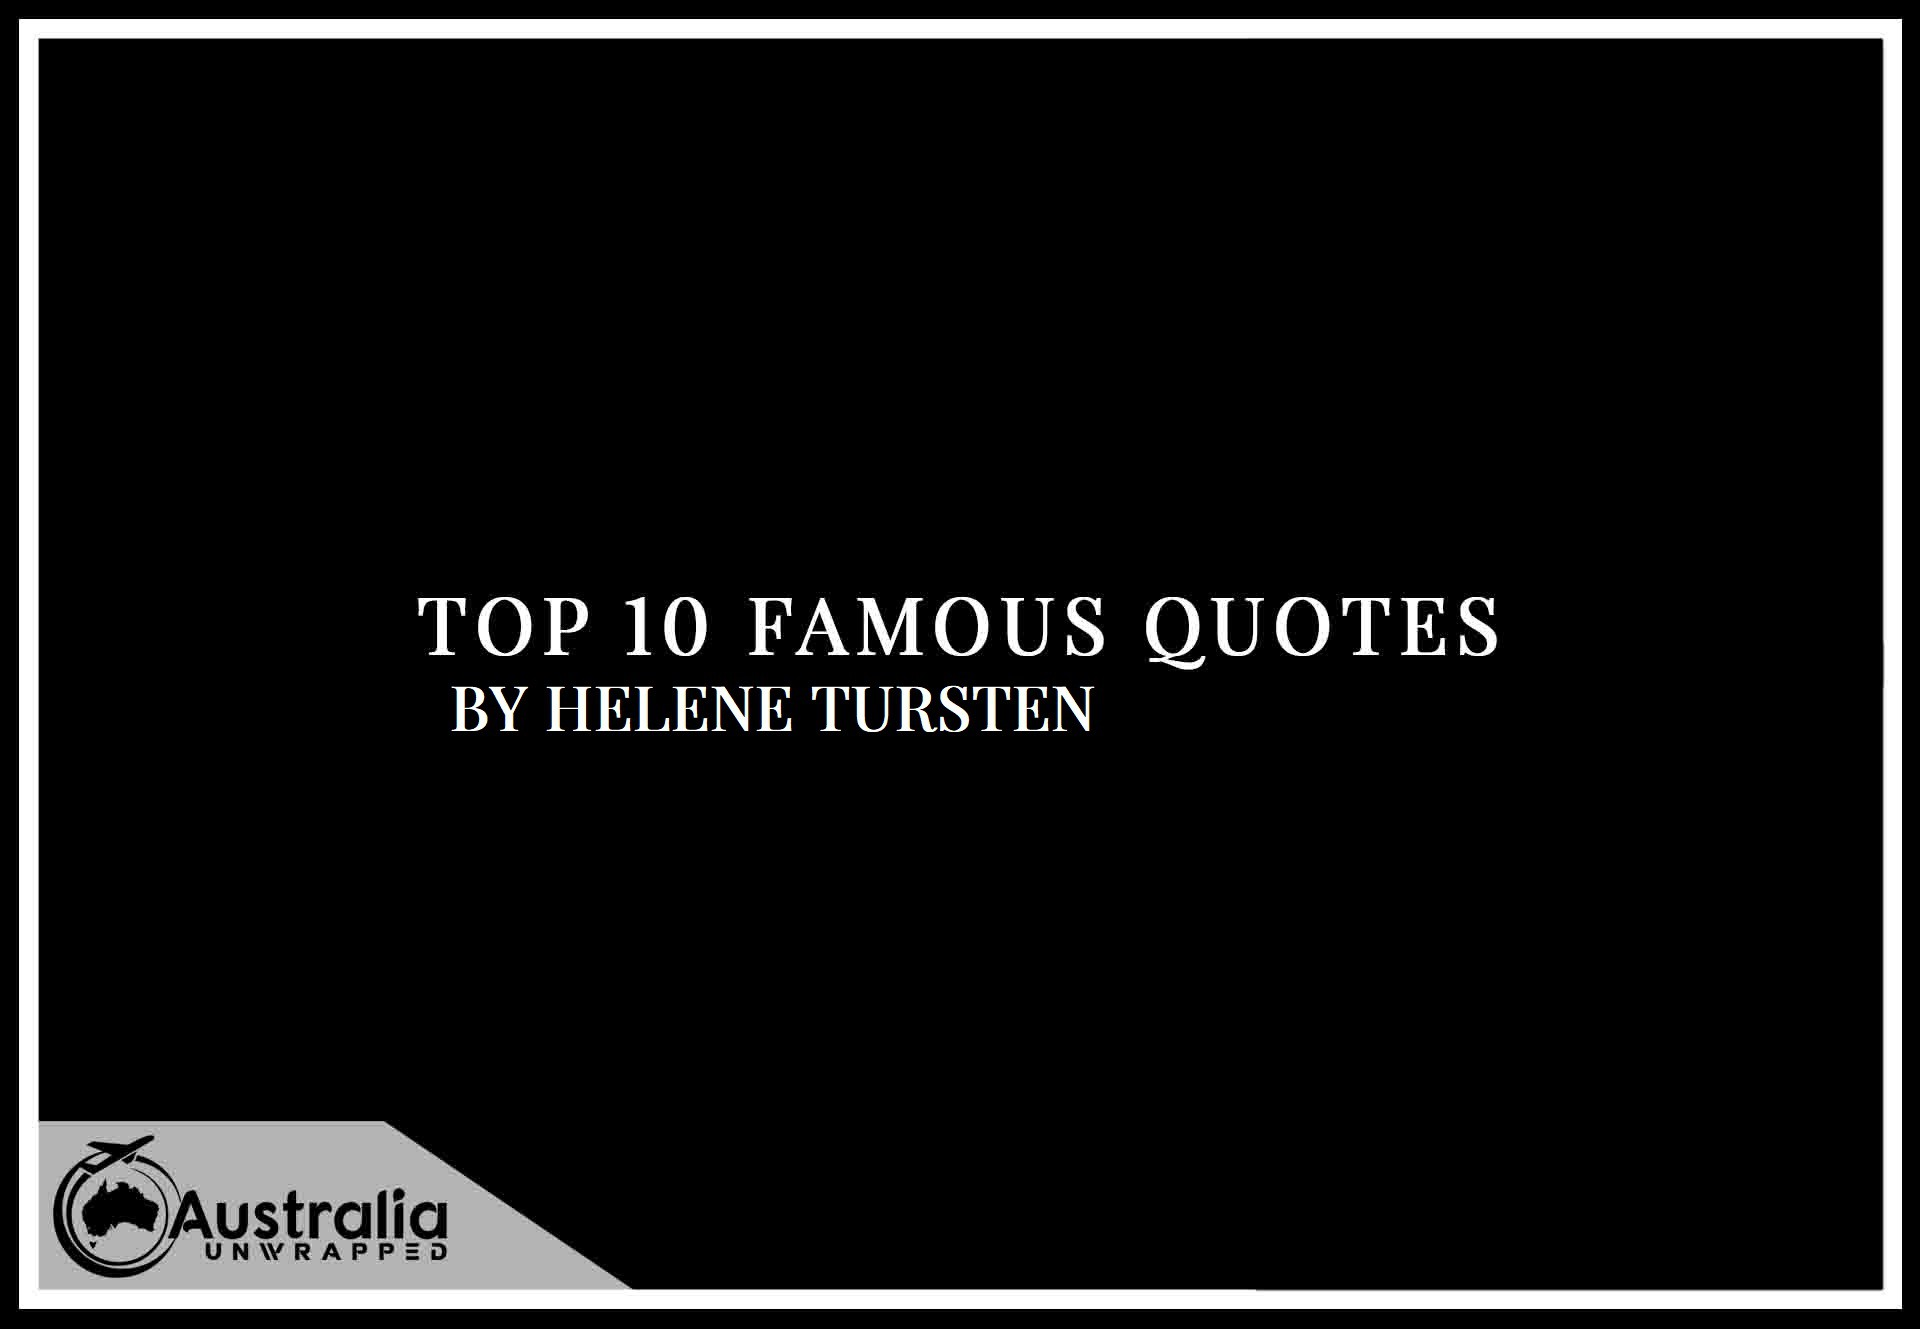 Top 10 Famous Quotes by Author Helen Tursten